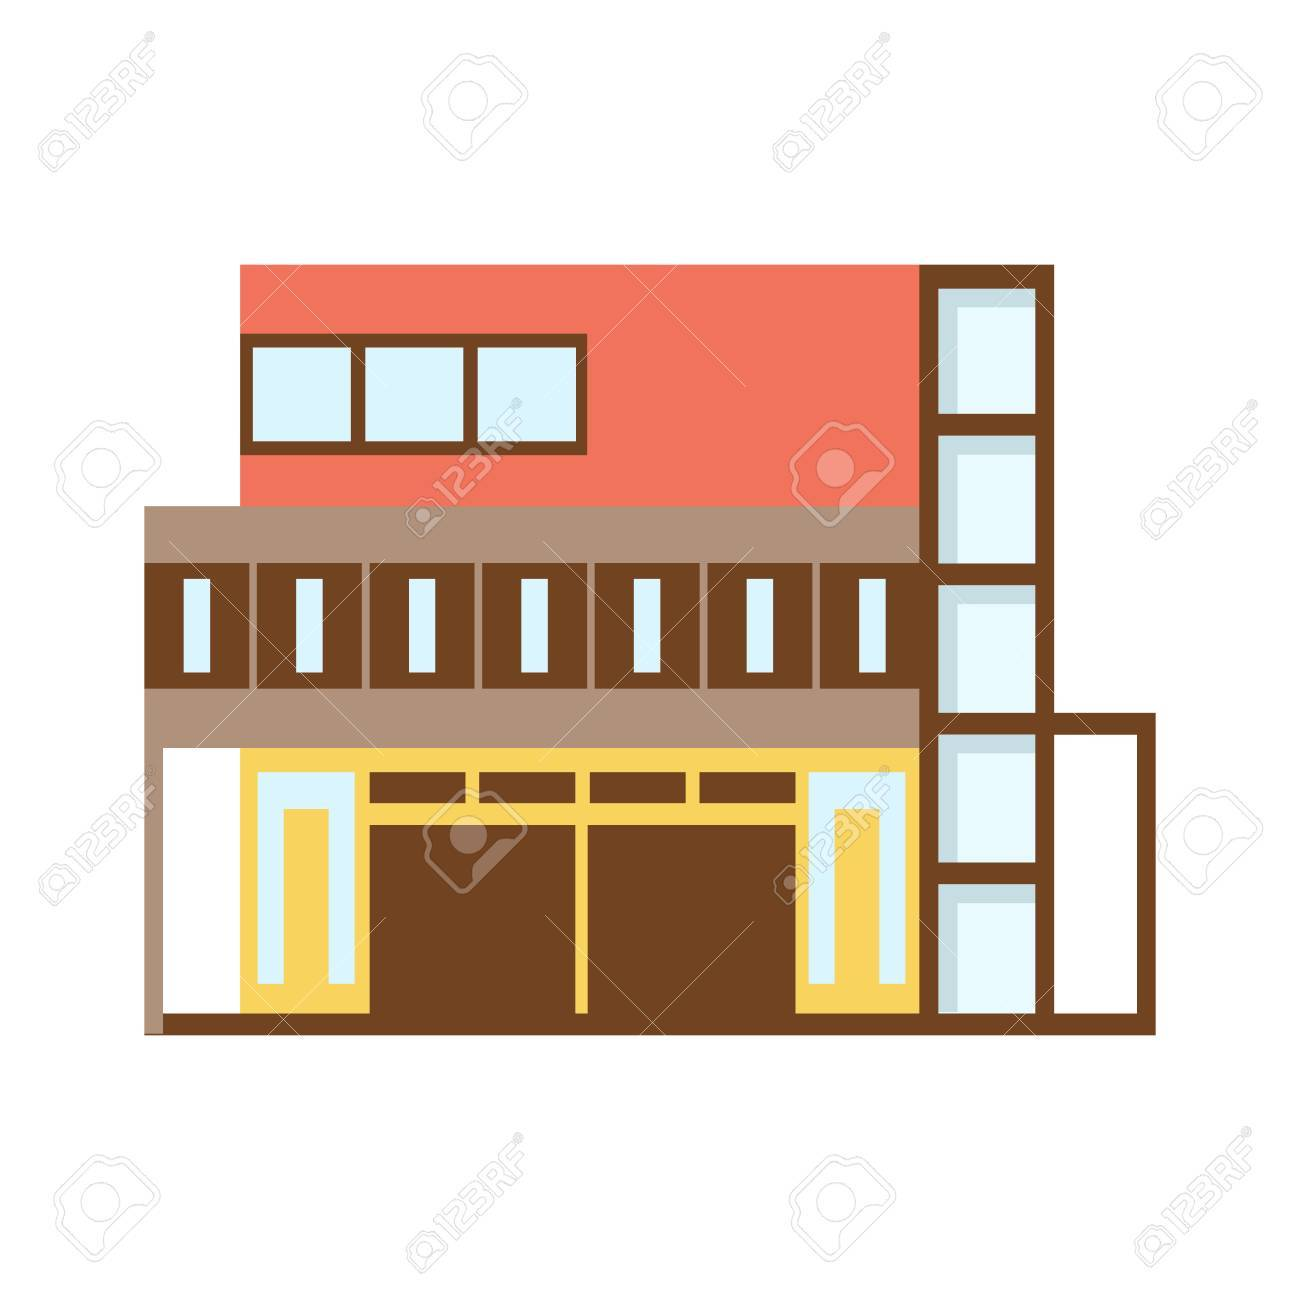 Brown And REd Shopping Mall Modern Building Exterior Design Project  Template Isolated Flat Illustration Stock Vector